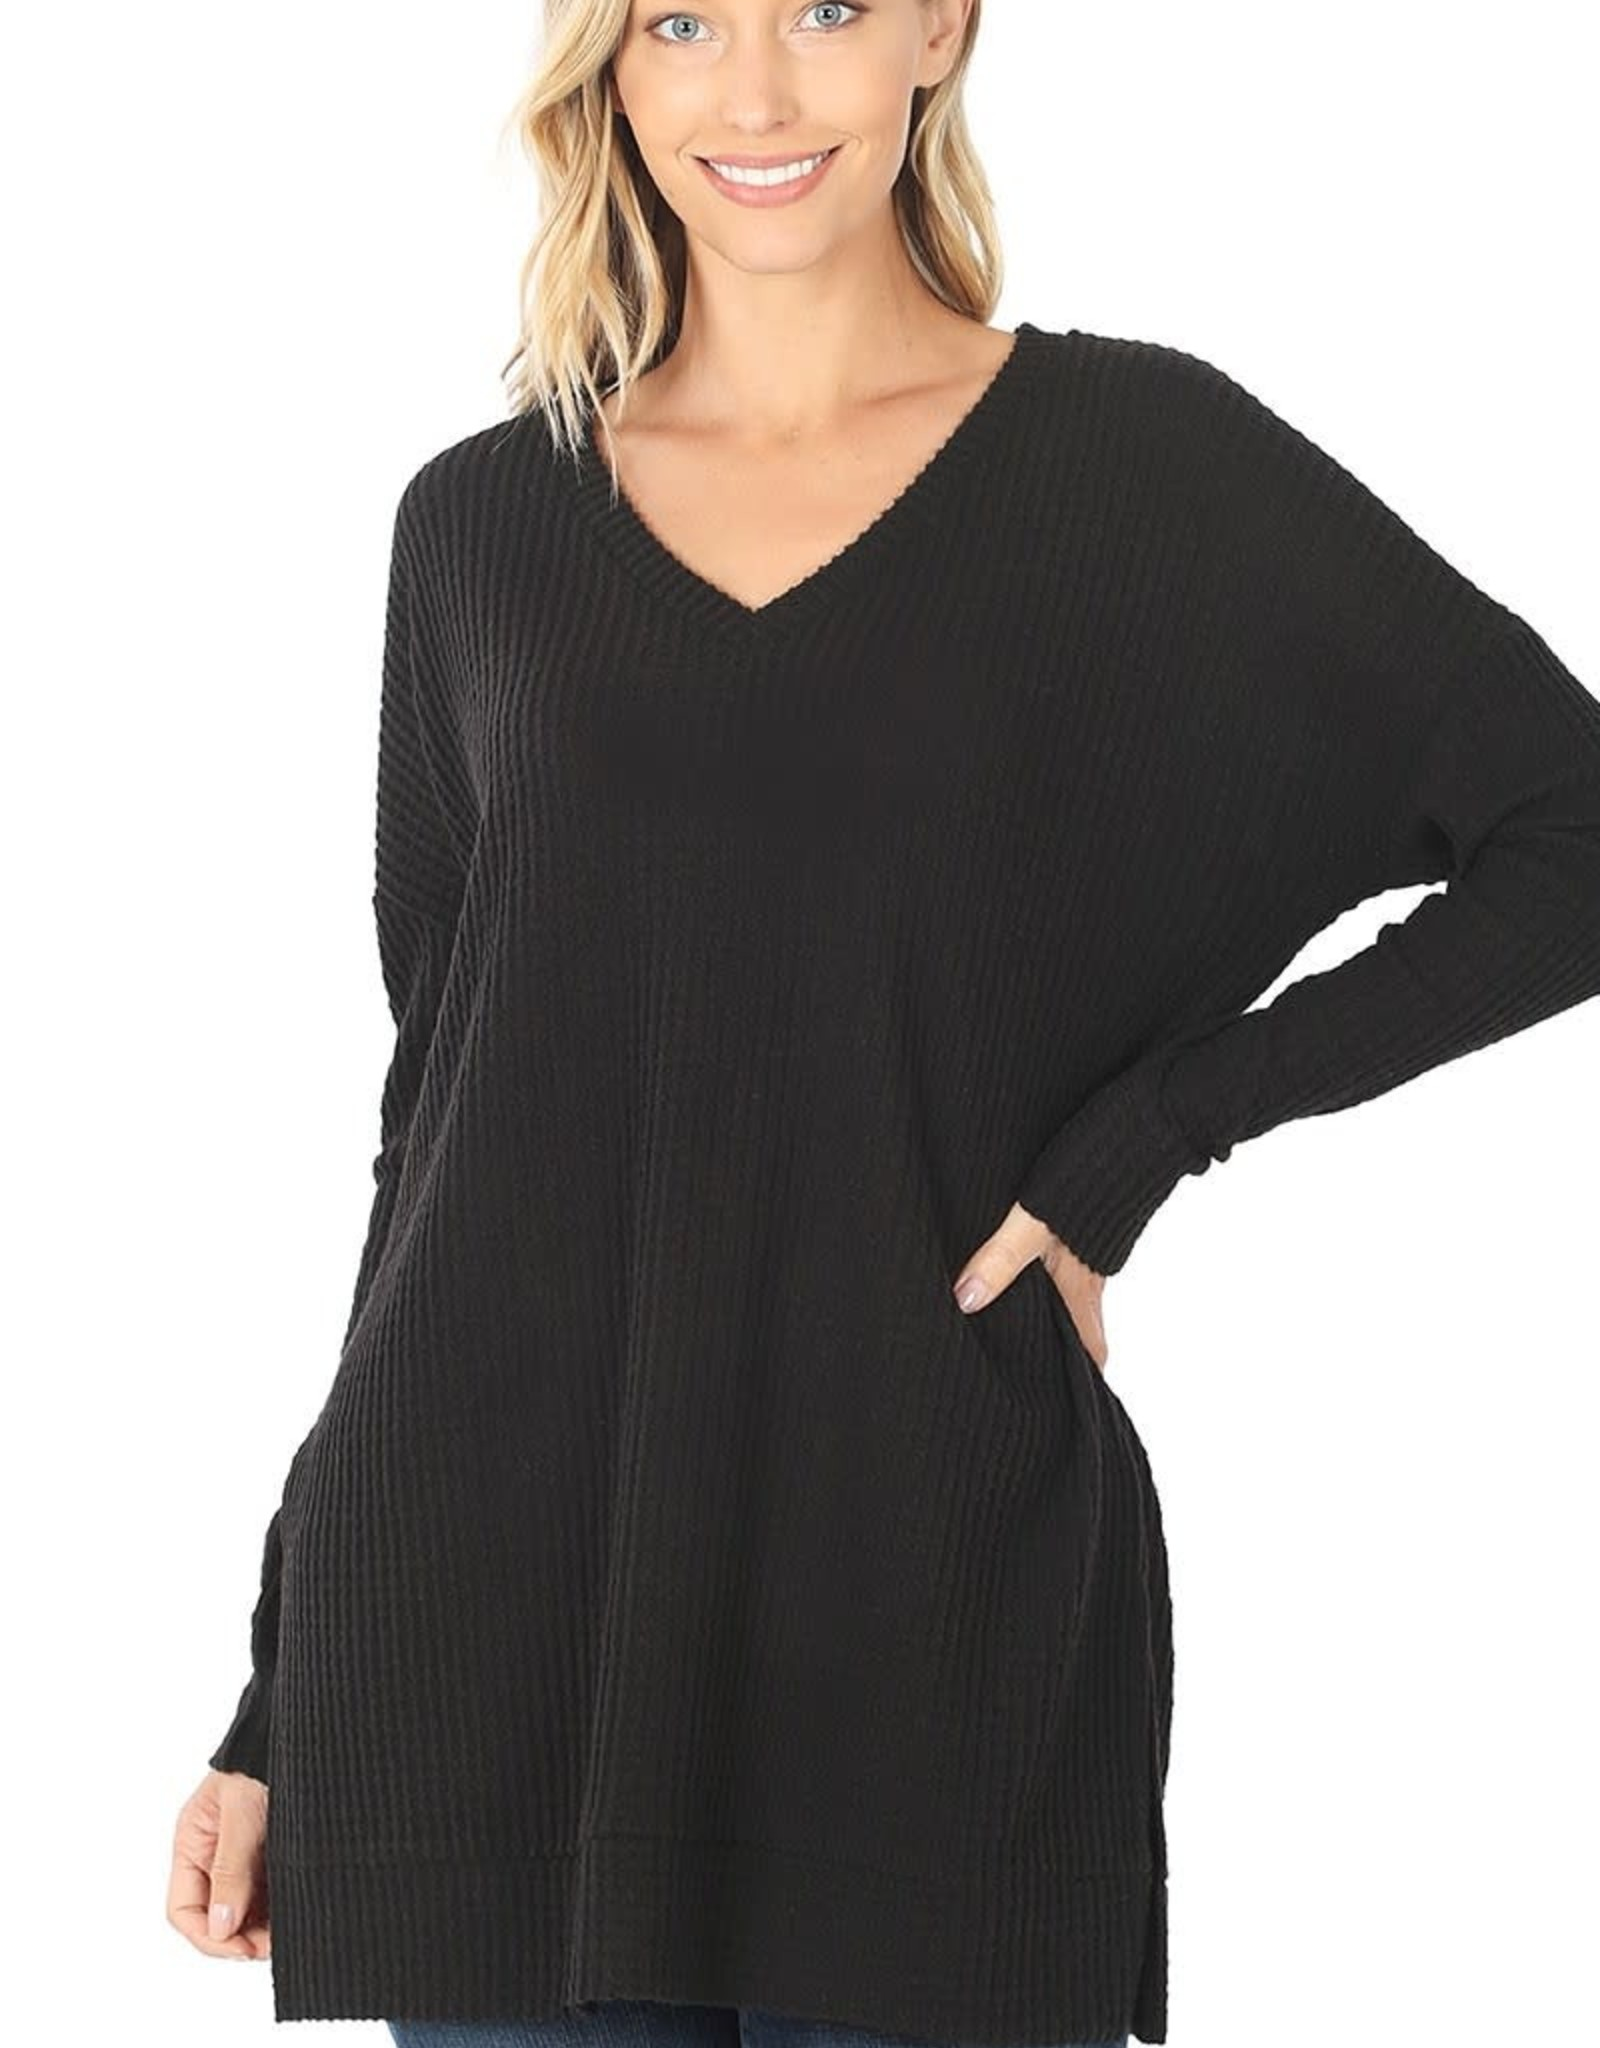 Miss Bliss Brushed Thermal Waffle V Neck Sweater- Black